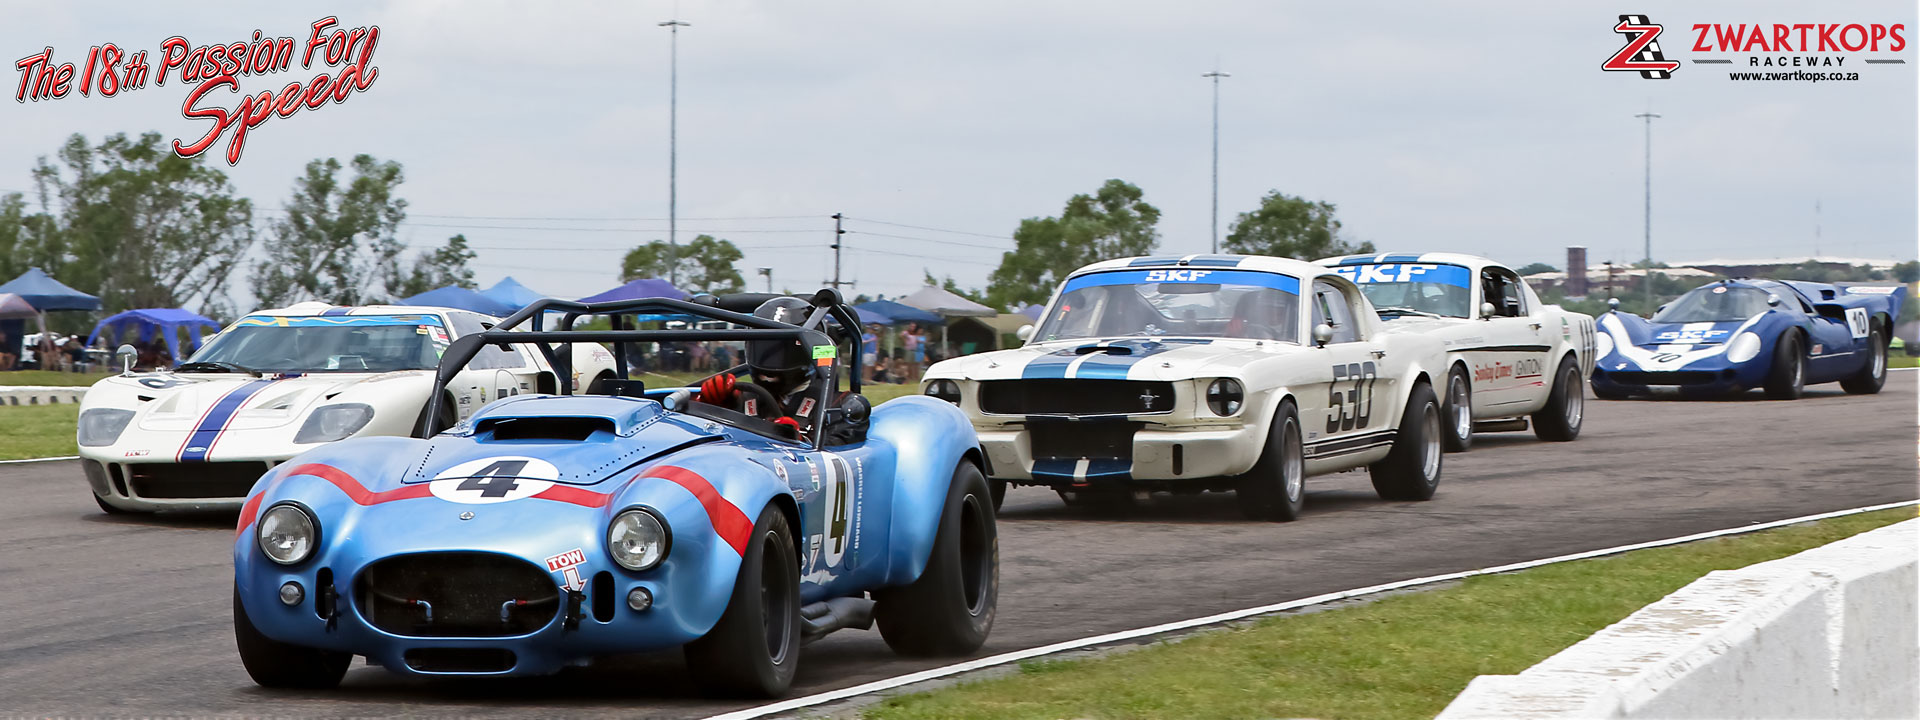 Wide range of activities at the 18th Passion for Speed on Feb 1, 2 and 3